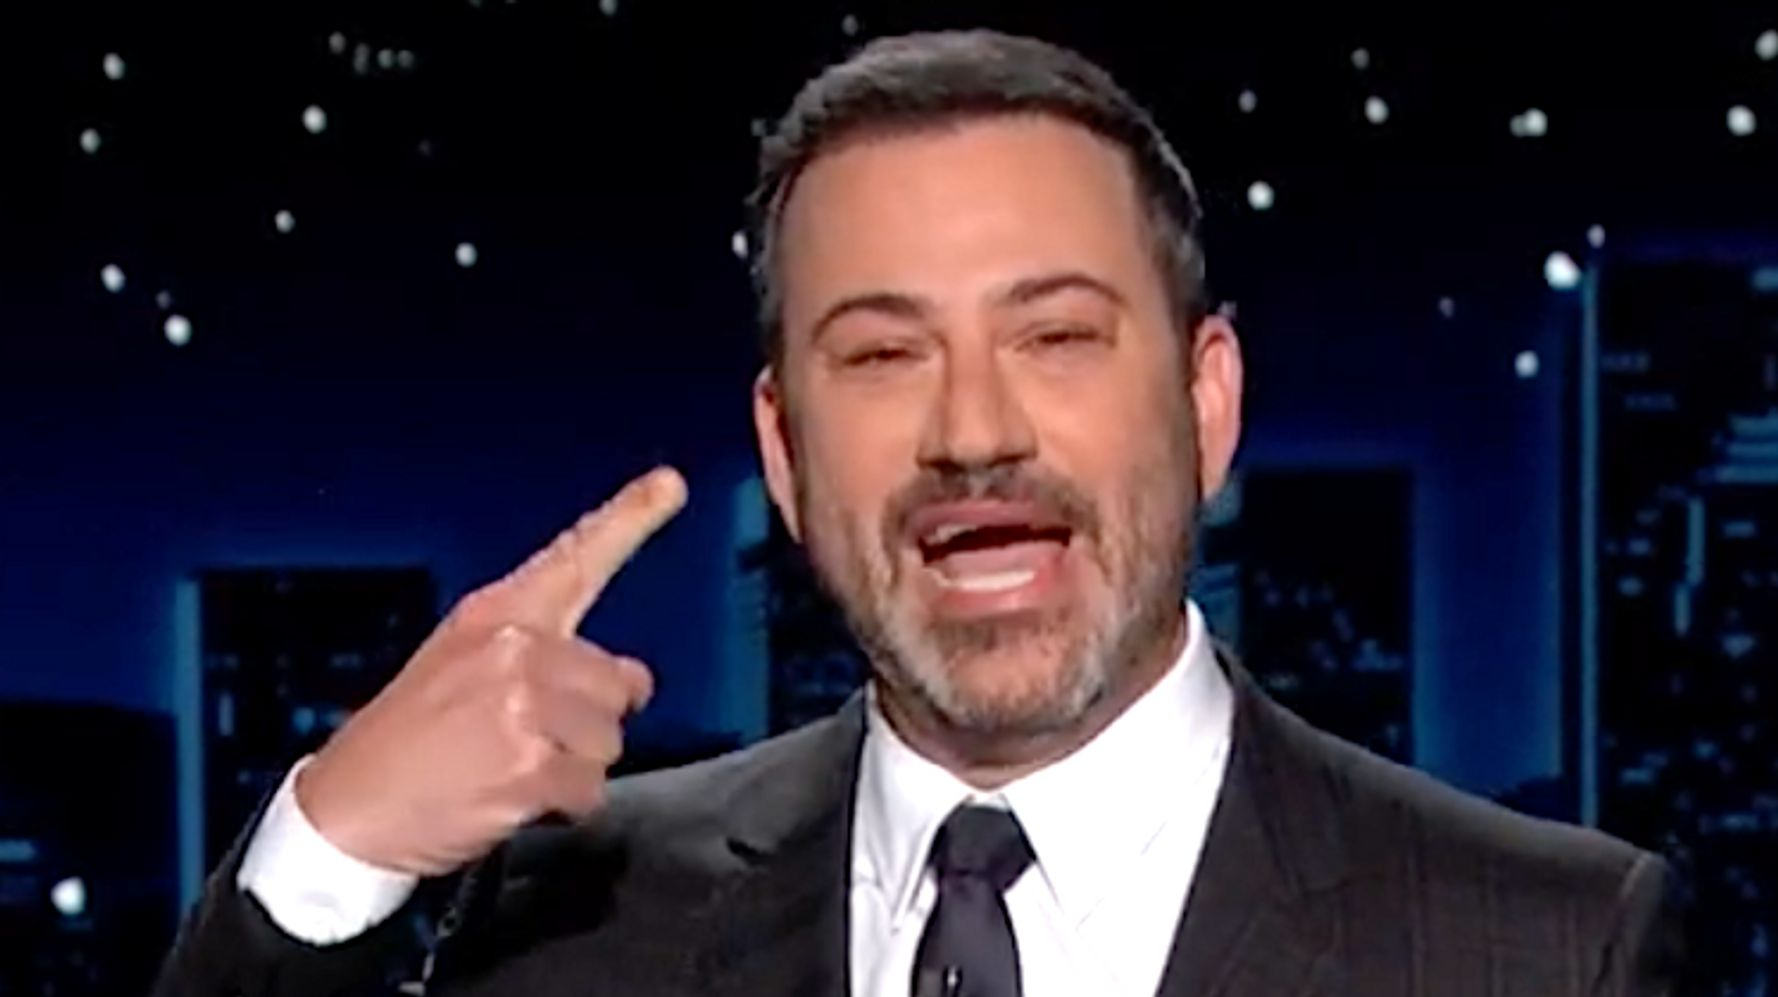 Jimmy Kimmel Reveals Real Reason Trump Is 'Sick And Tired' Of Hearing About COVID-19